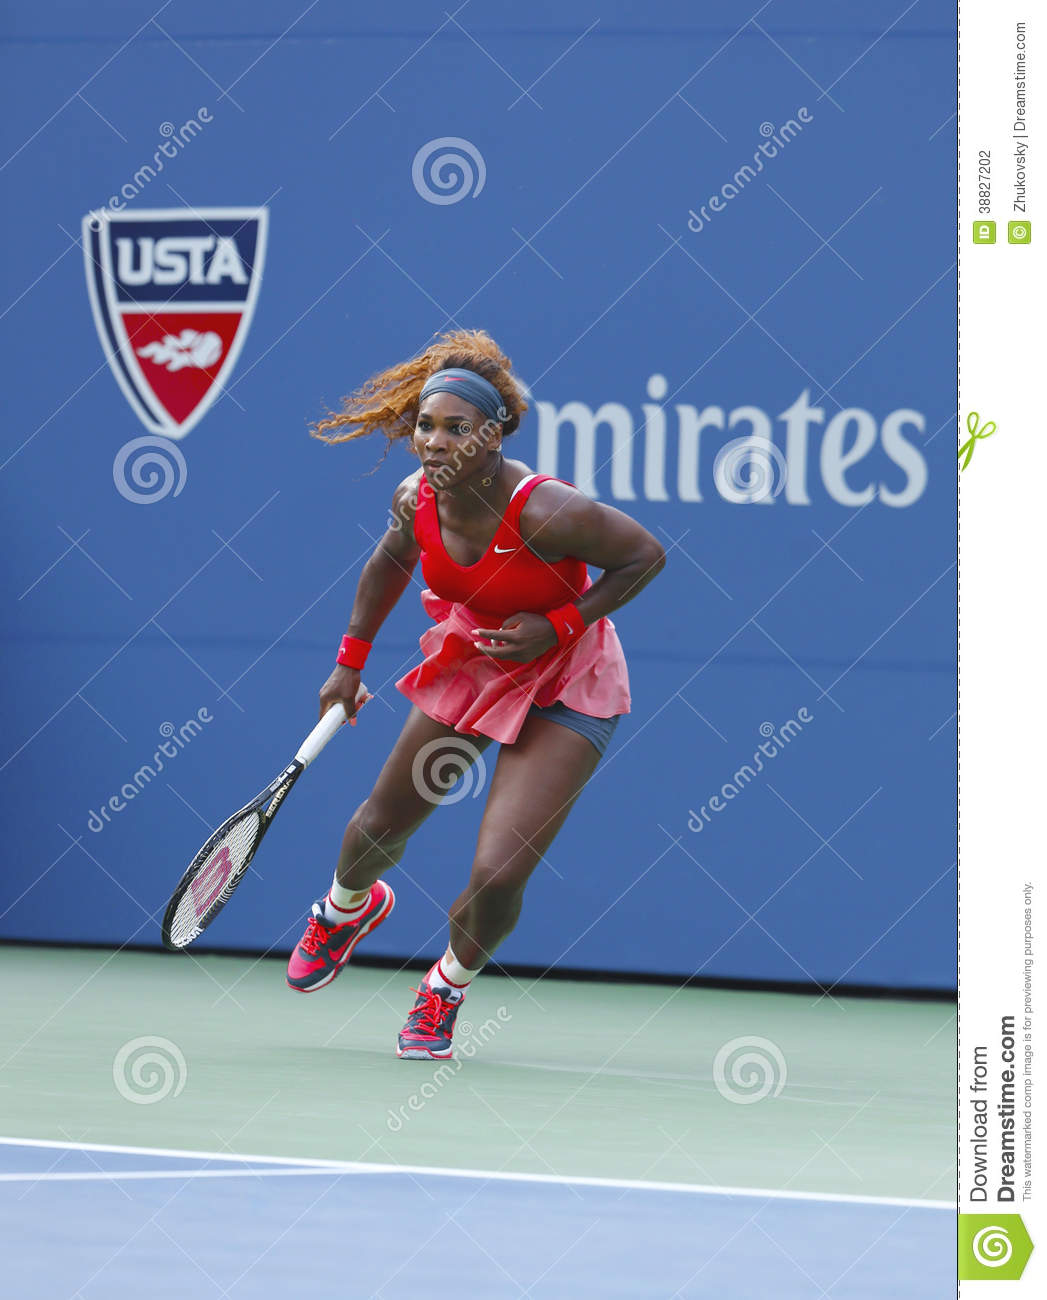 Serena Williams an US Open 2013